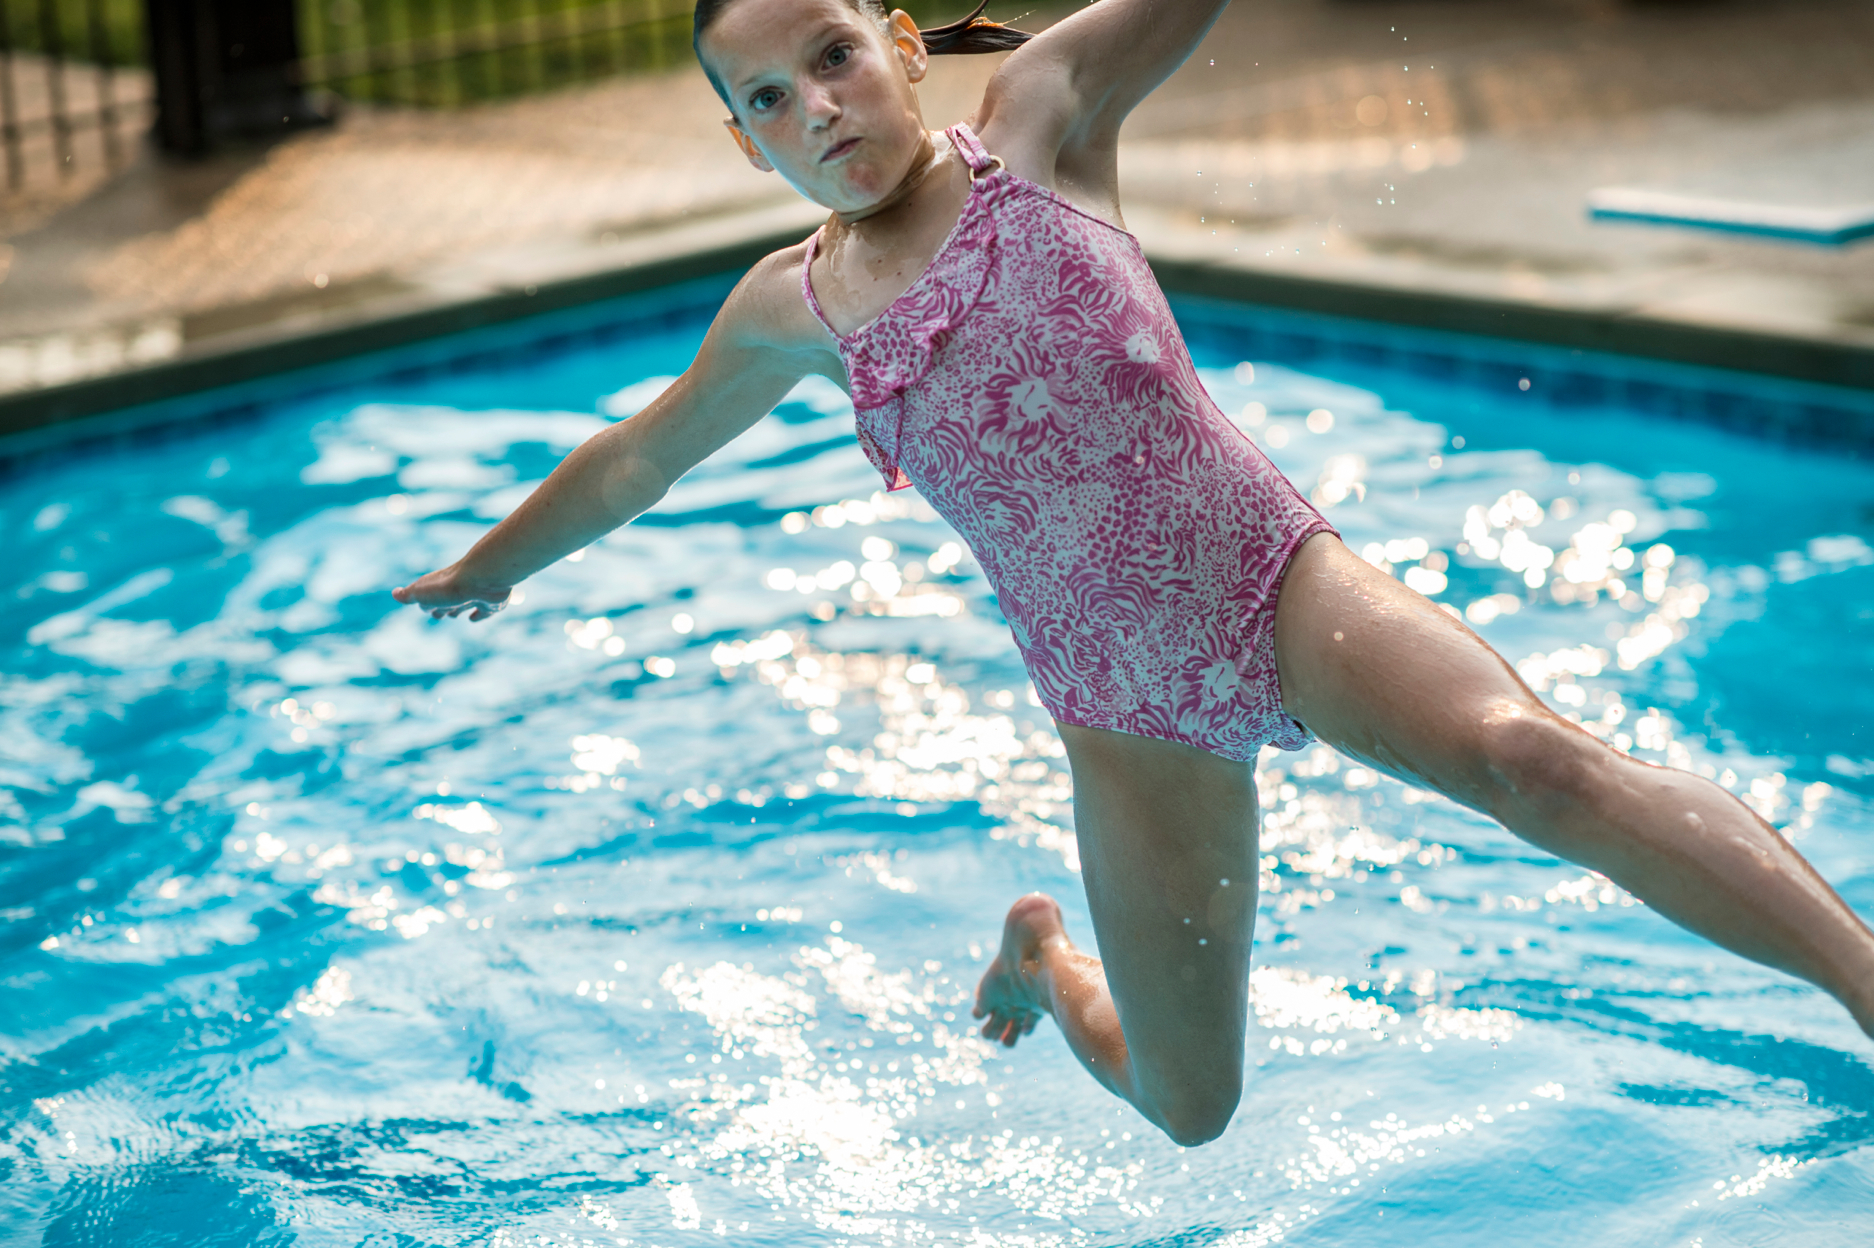 girl jumping in pool with pink bathing suit